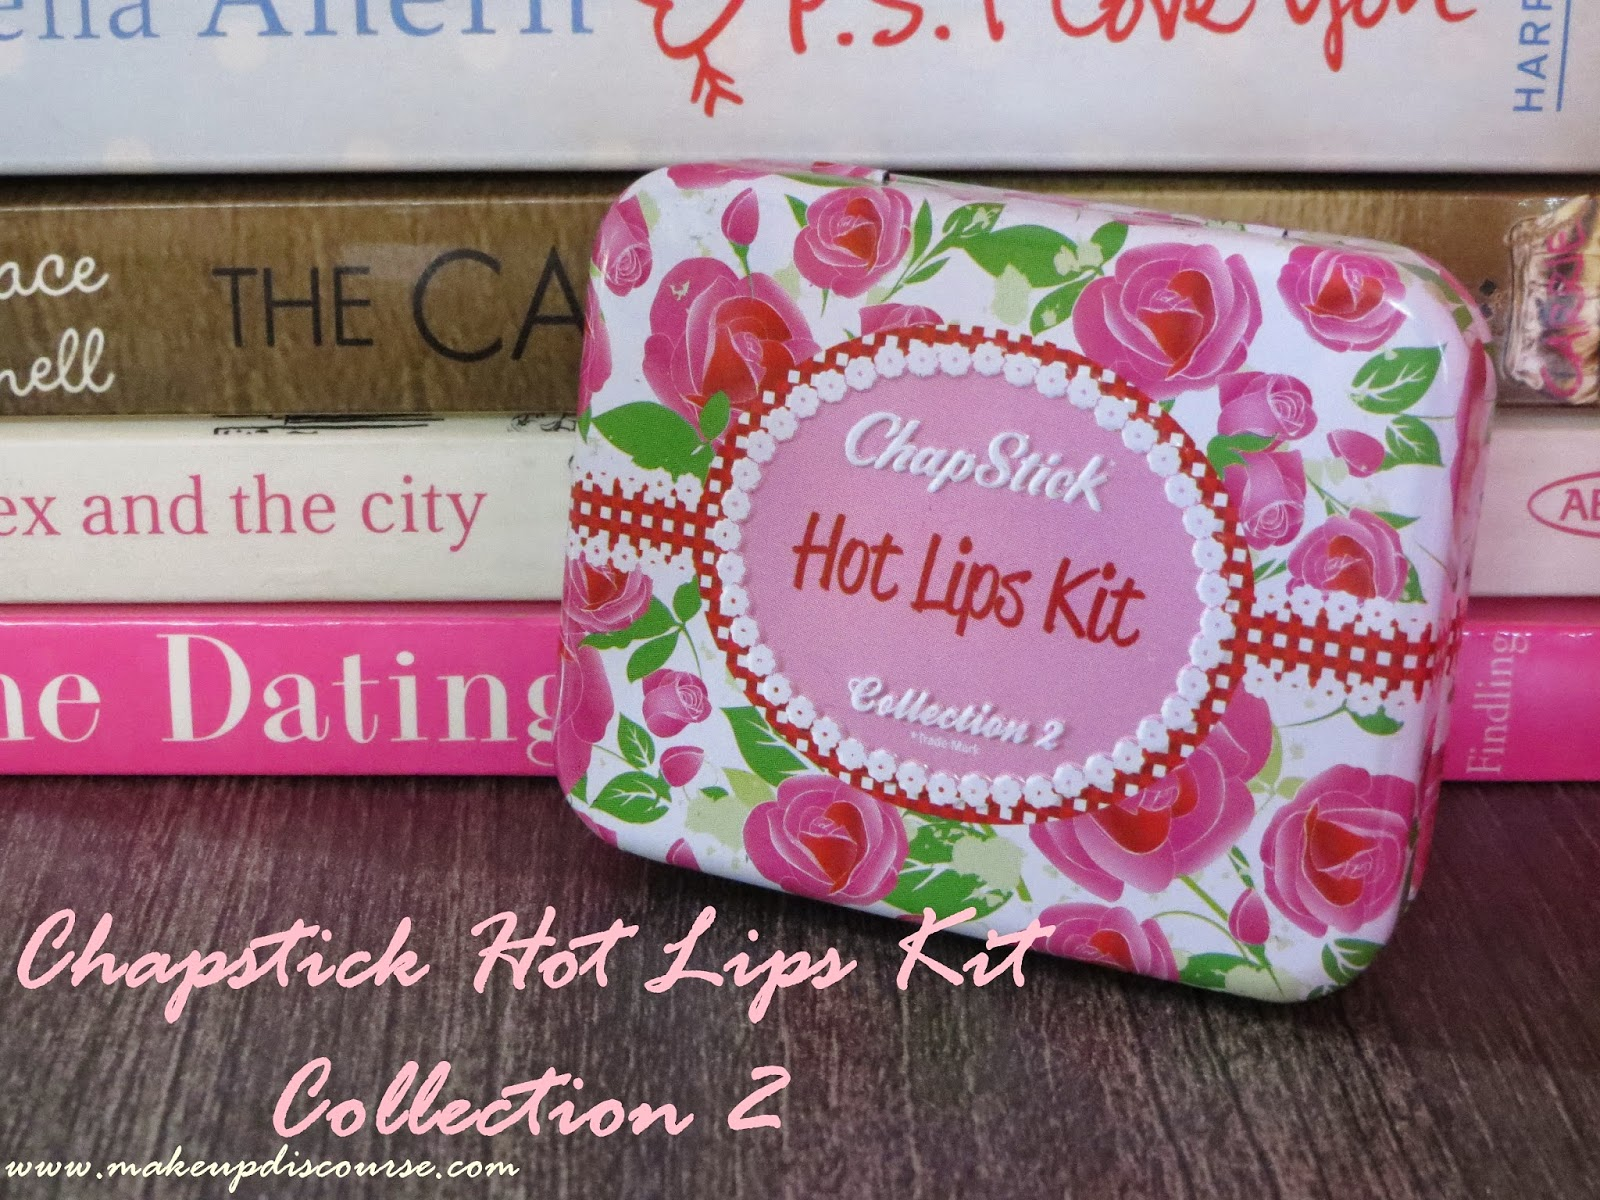 Chapstick Hot Lips Kit Collection 2 in India